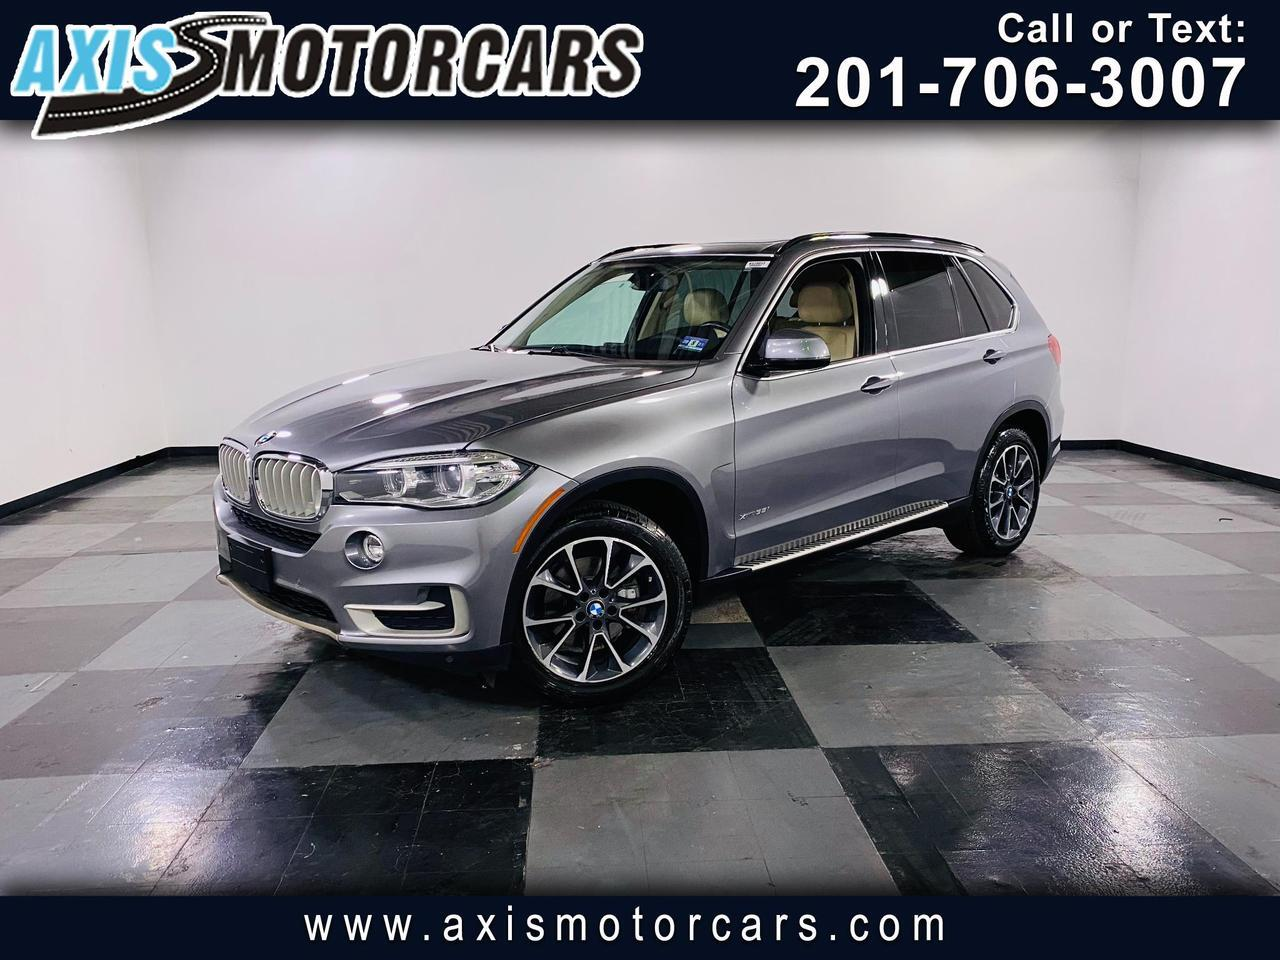 2015 BMW X5 AWD 4dr xDrive35i w/Backup Camera Navigation Panor Jersey City NJ